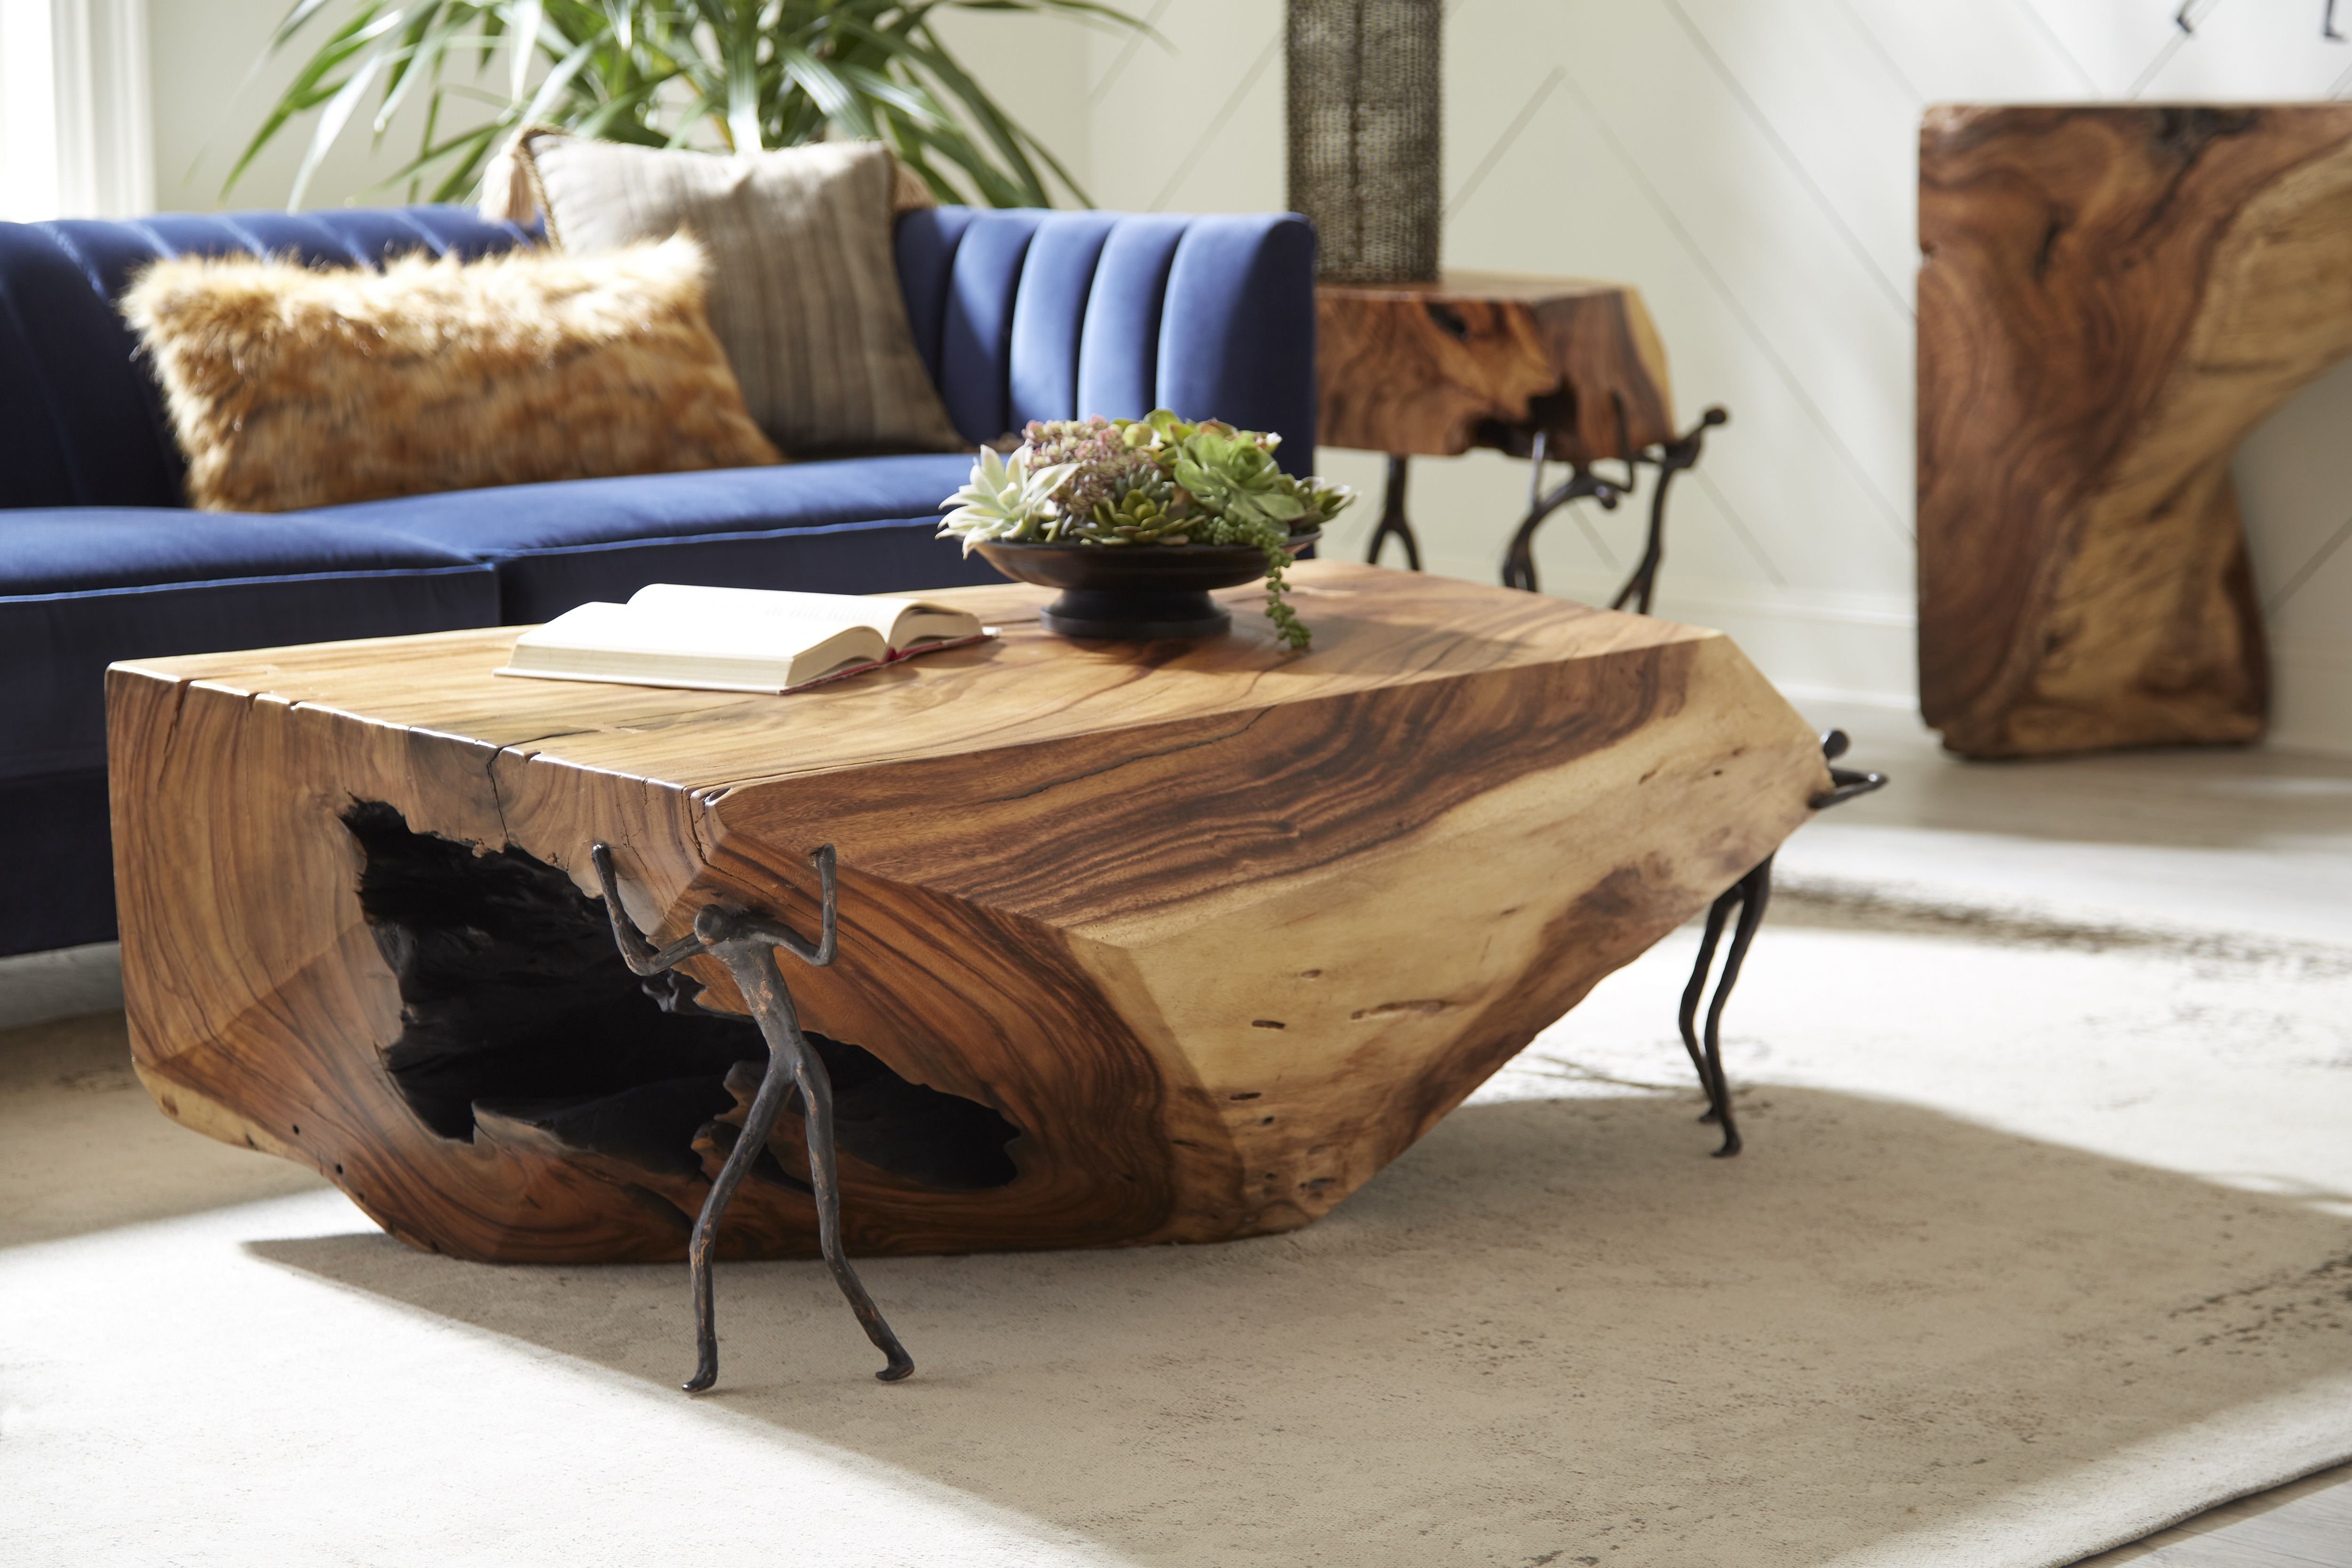 Atlas Coffee Table By Phillips Collection Unique Wood Furniture Furniture Design Wooden Interior Design Bedroom Small [ 3333 x 5000 Pixel ]